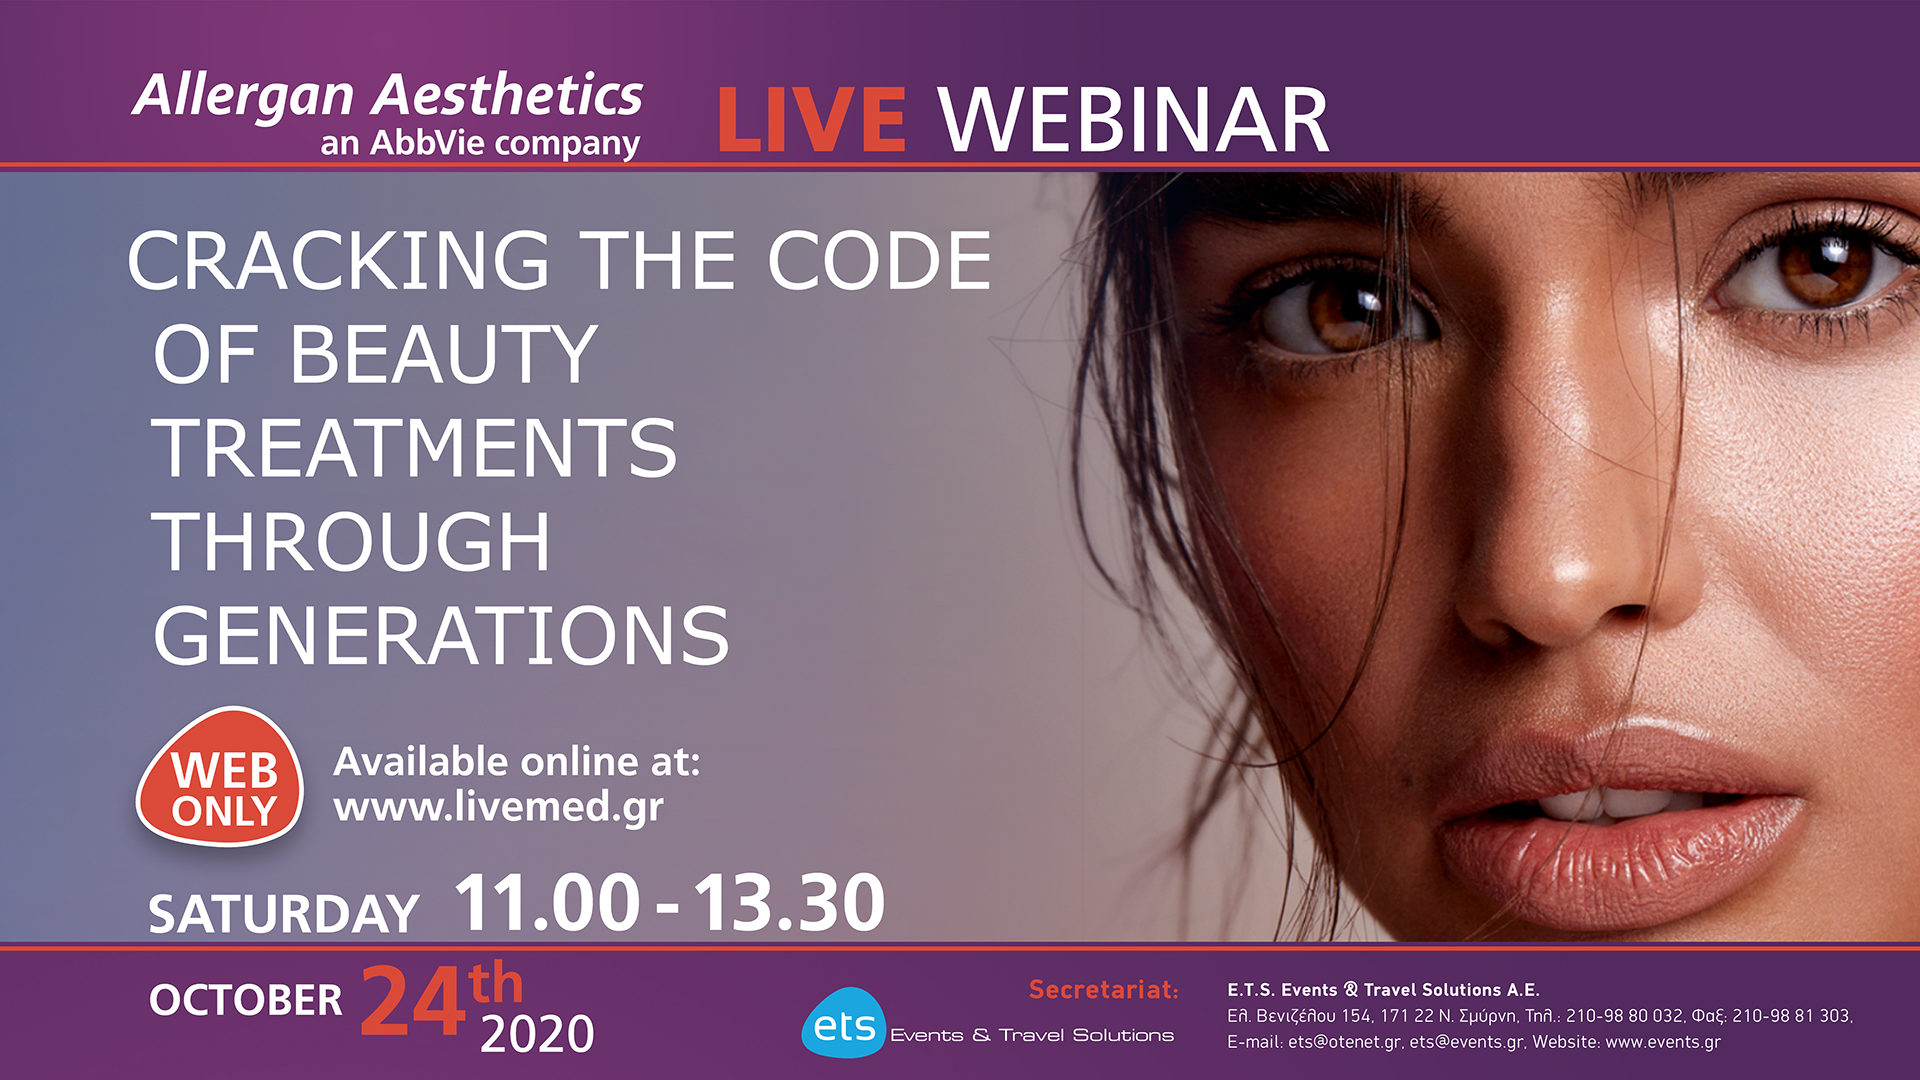 Webinar - Cracking The Code of Beauty Treatments Through Generations